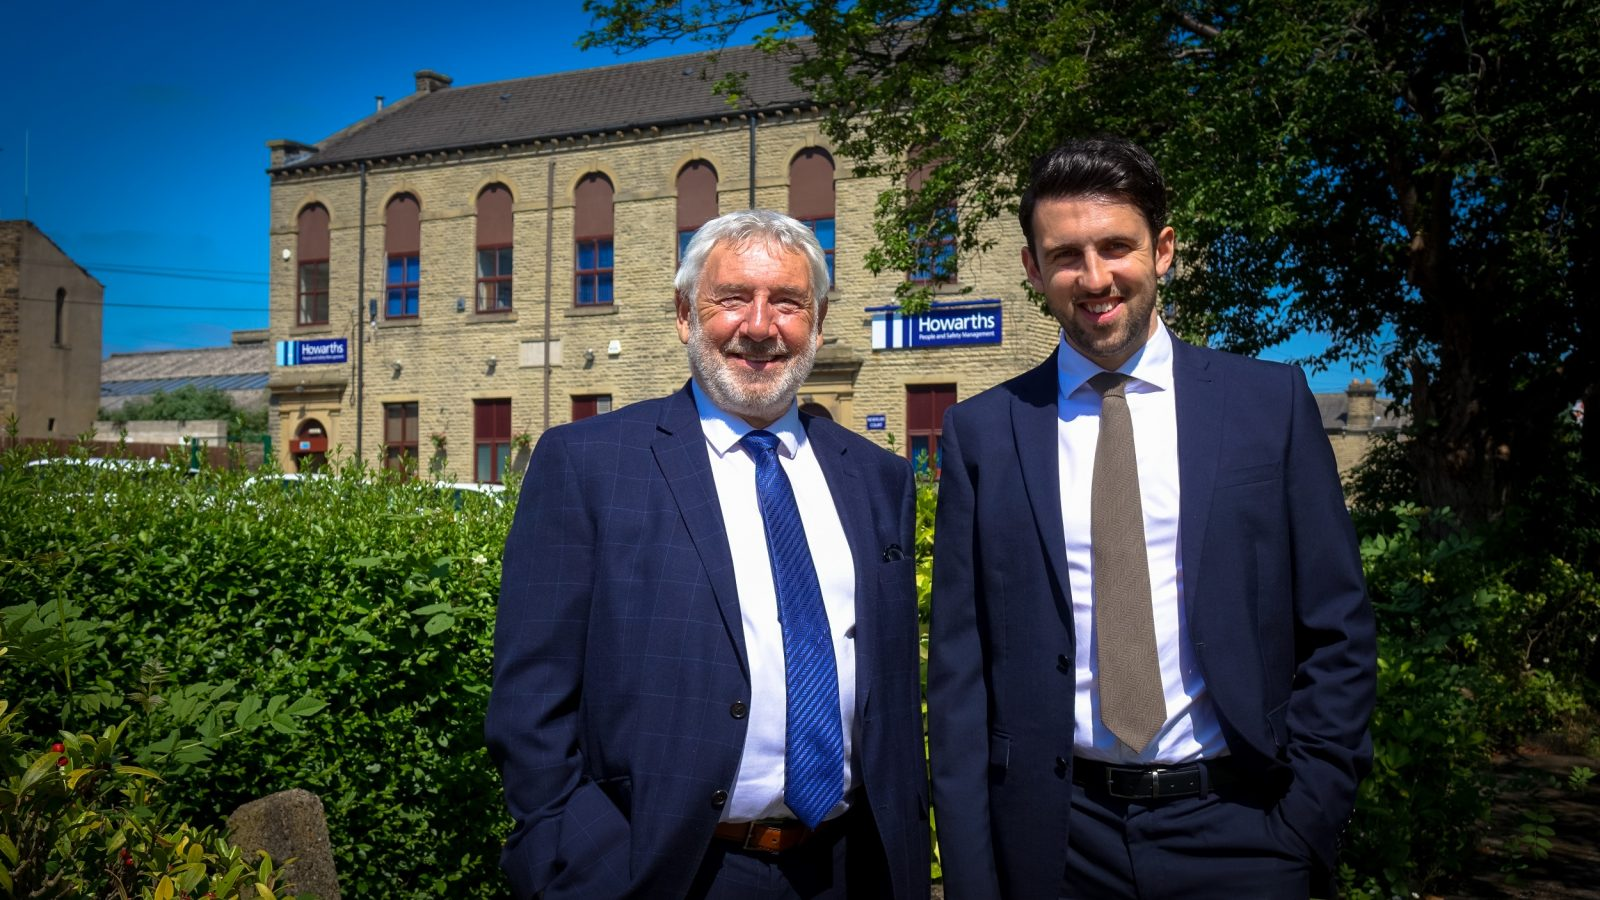 Howarths chairman, Andy Howarth (left), with managing director, Gavin Howarth